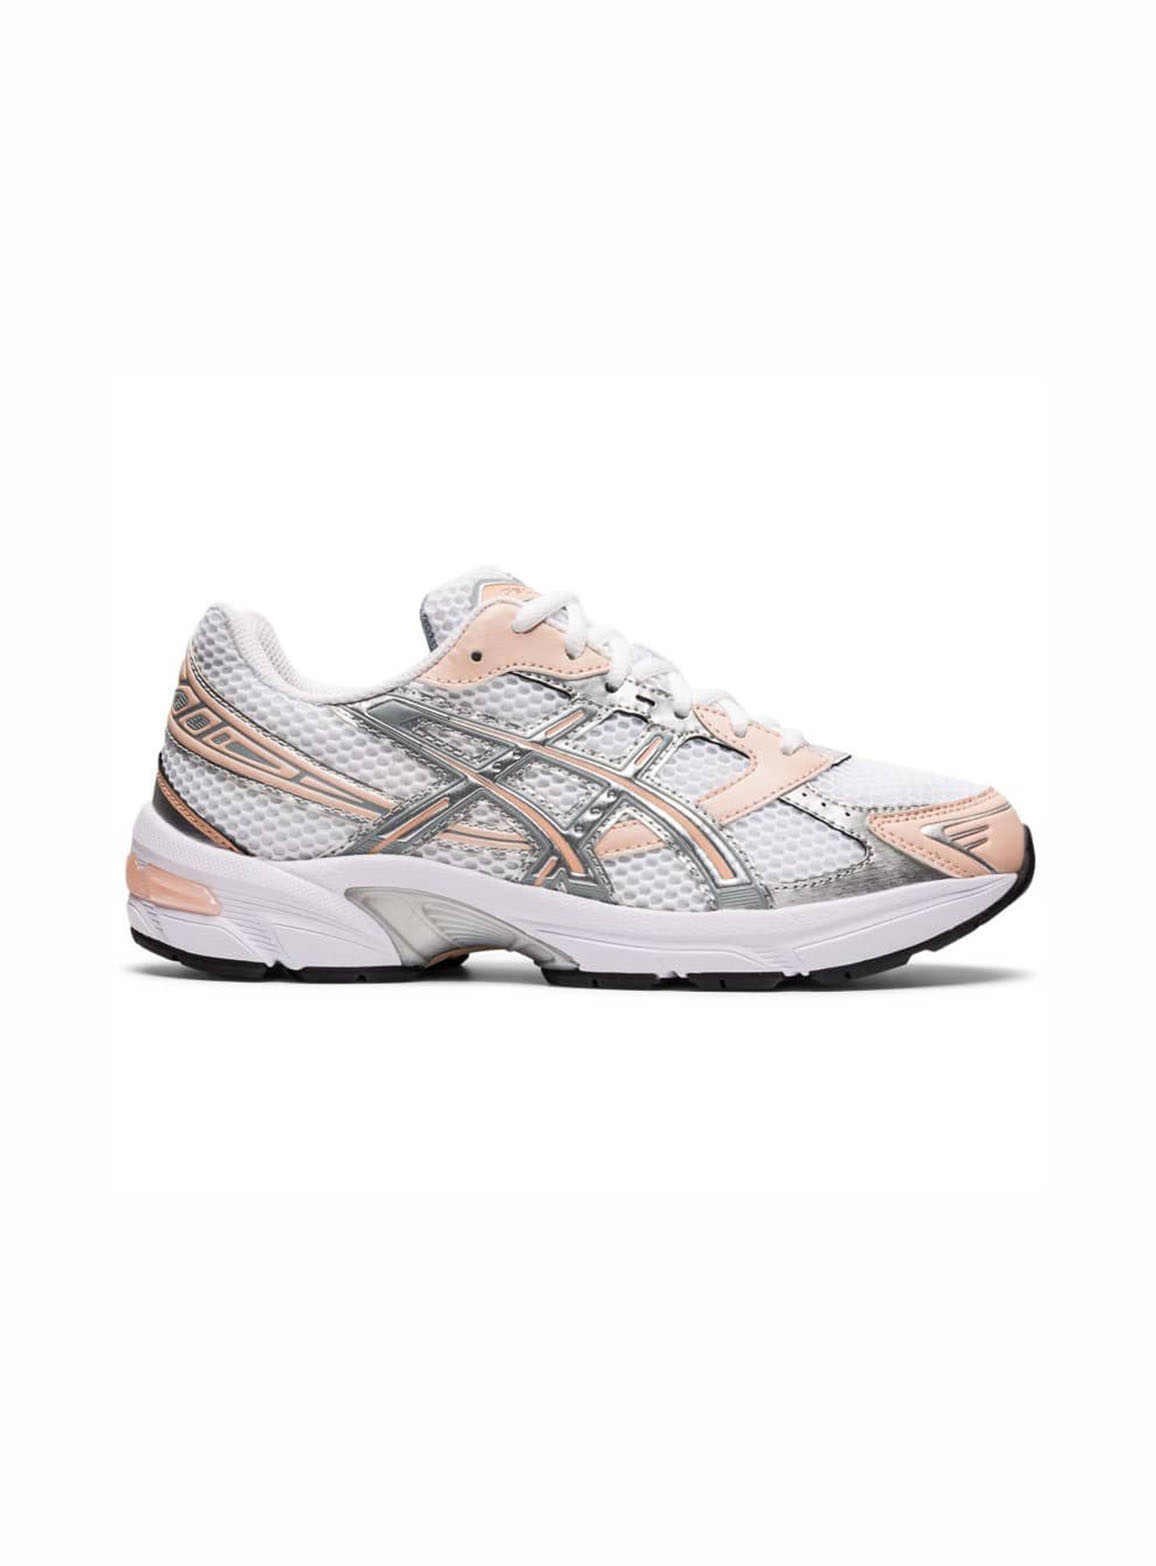 Asics Gel-1130 trainers in white and peach